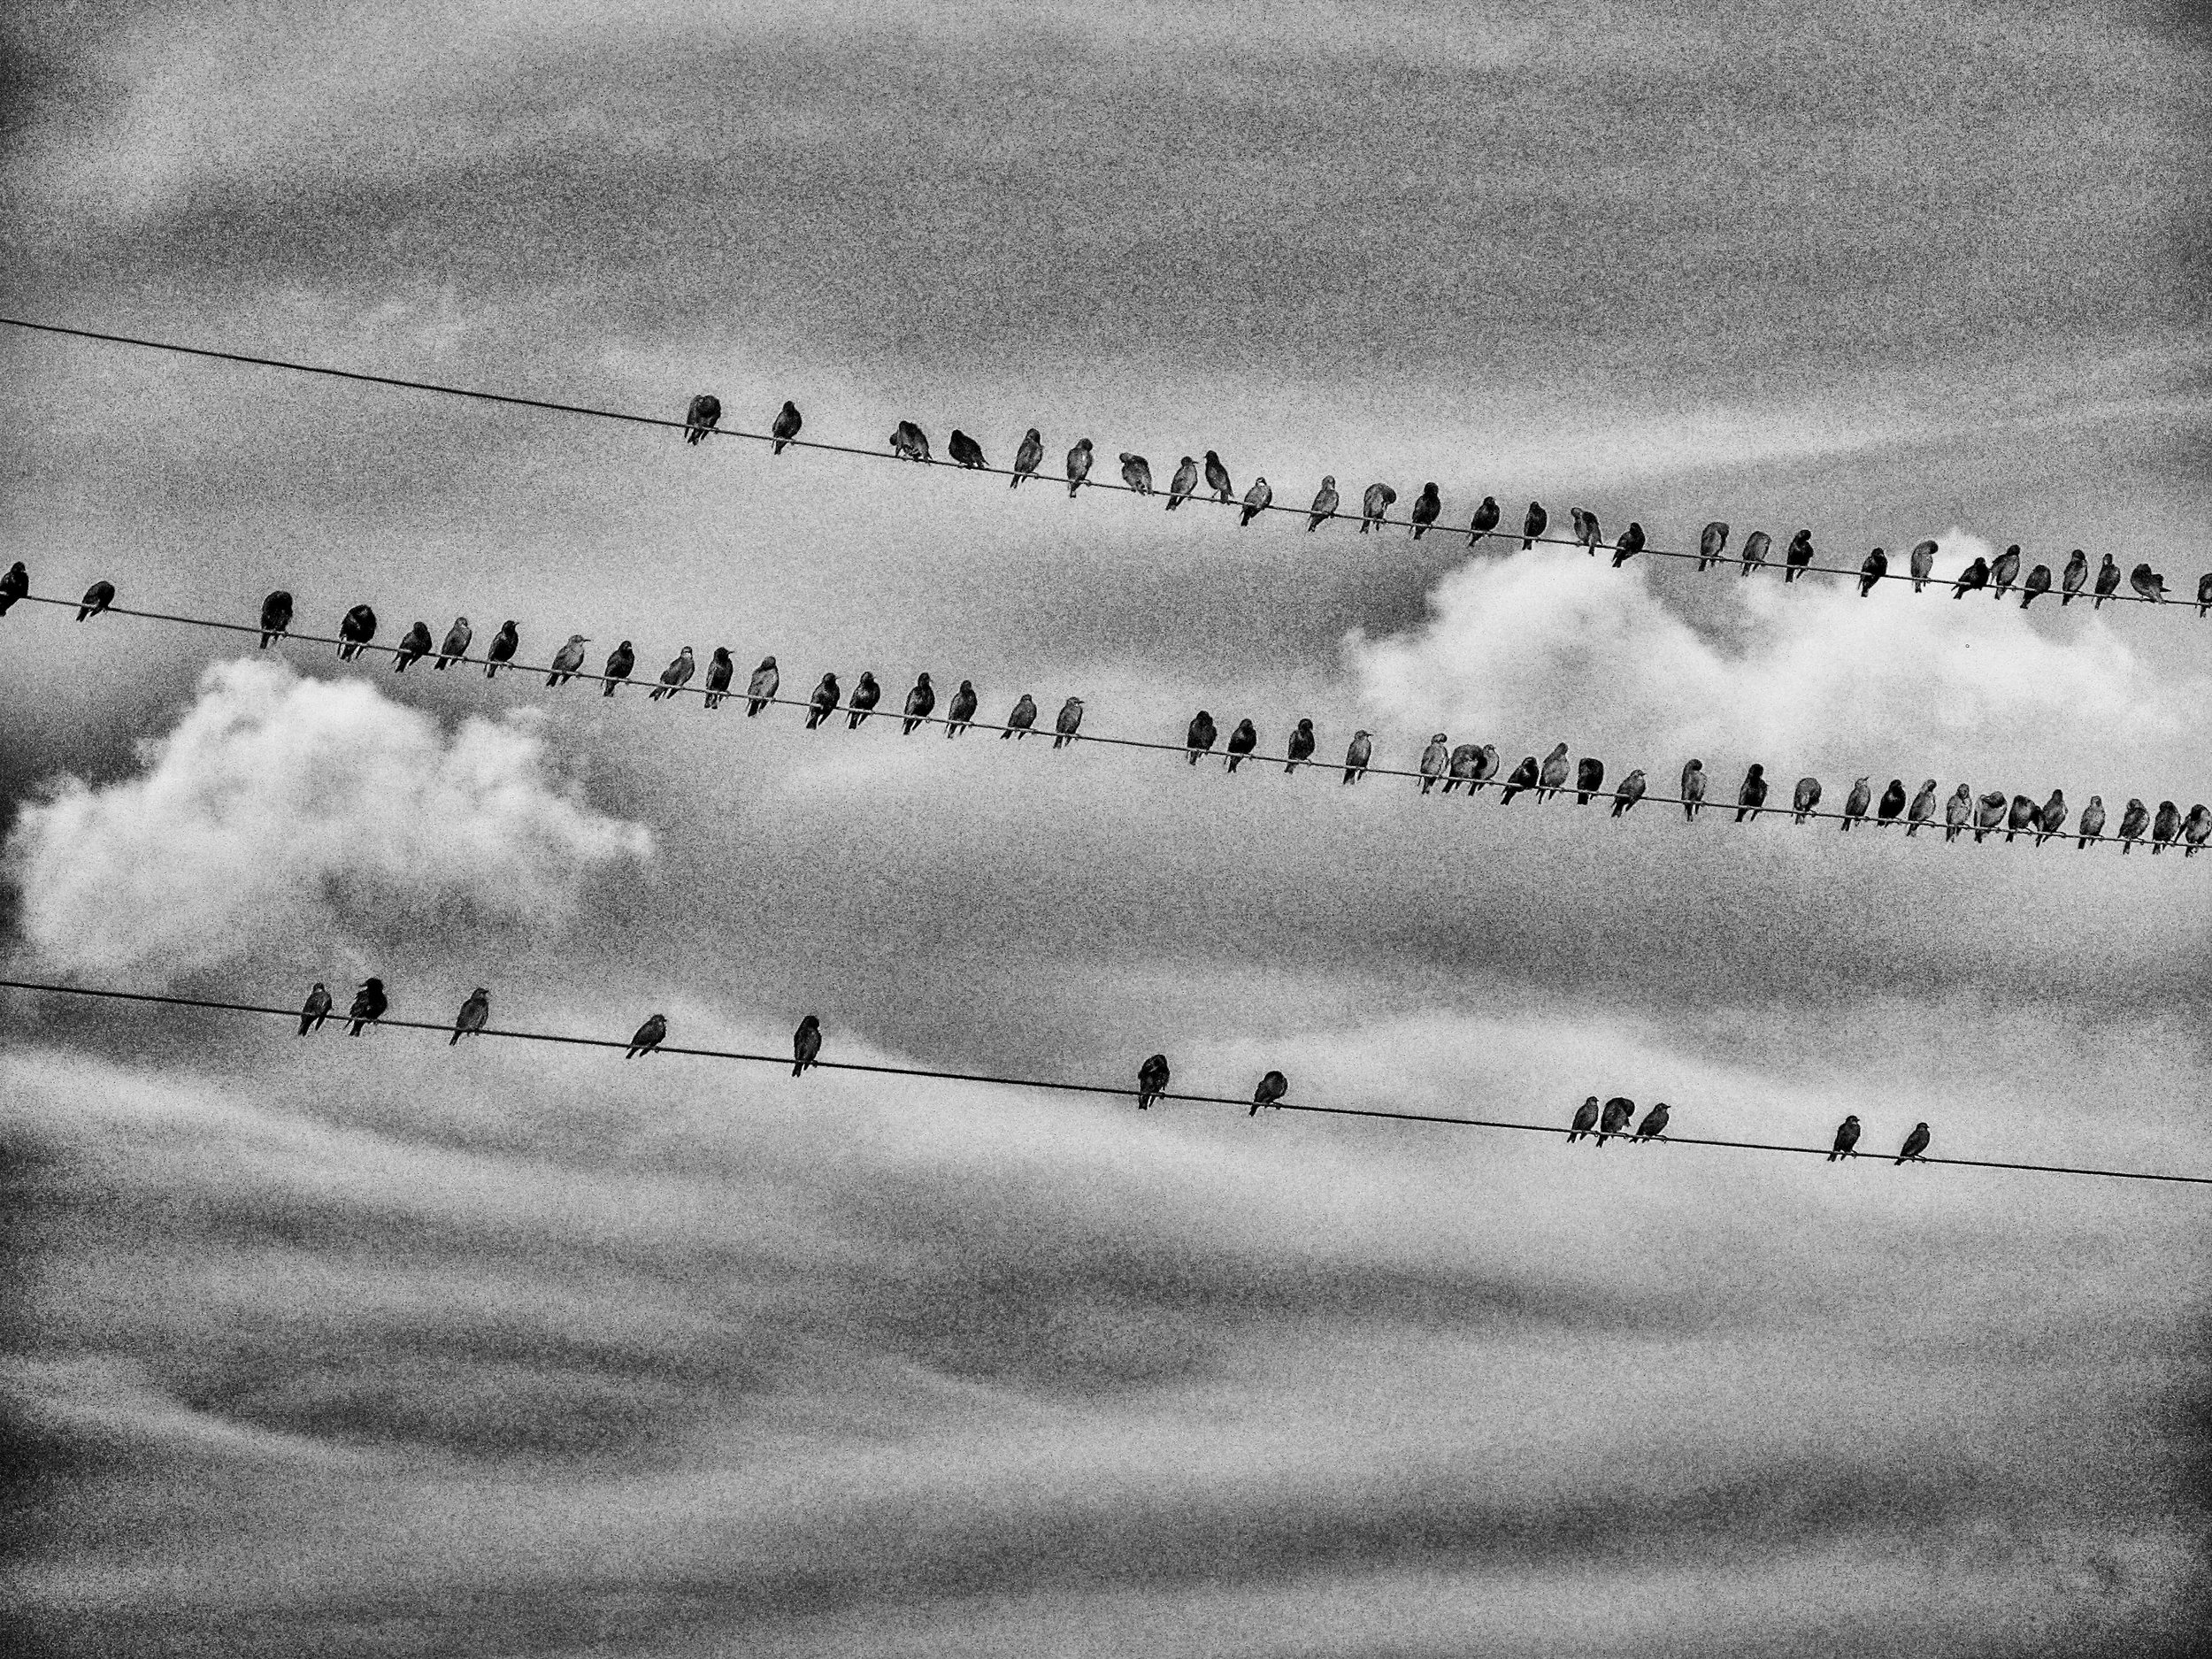 Starlings perched on power lines. Latvia